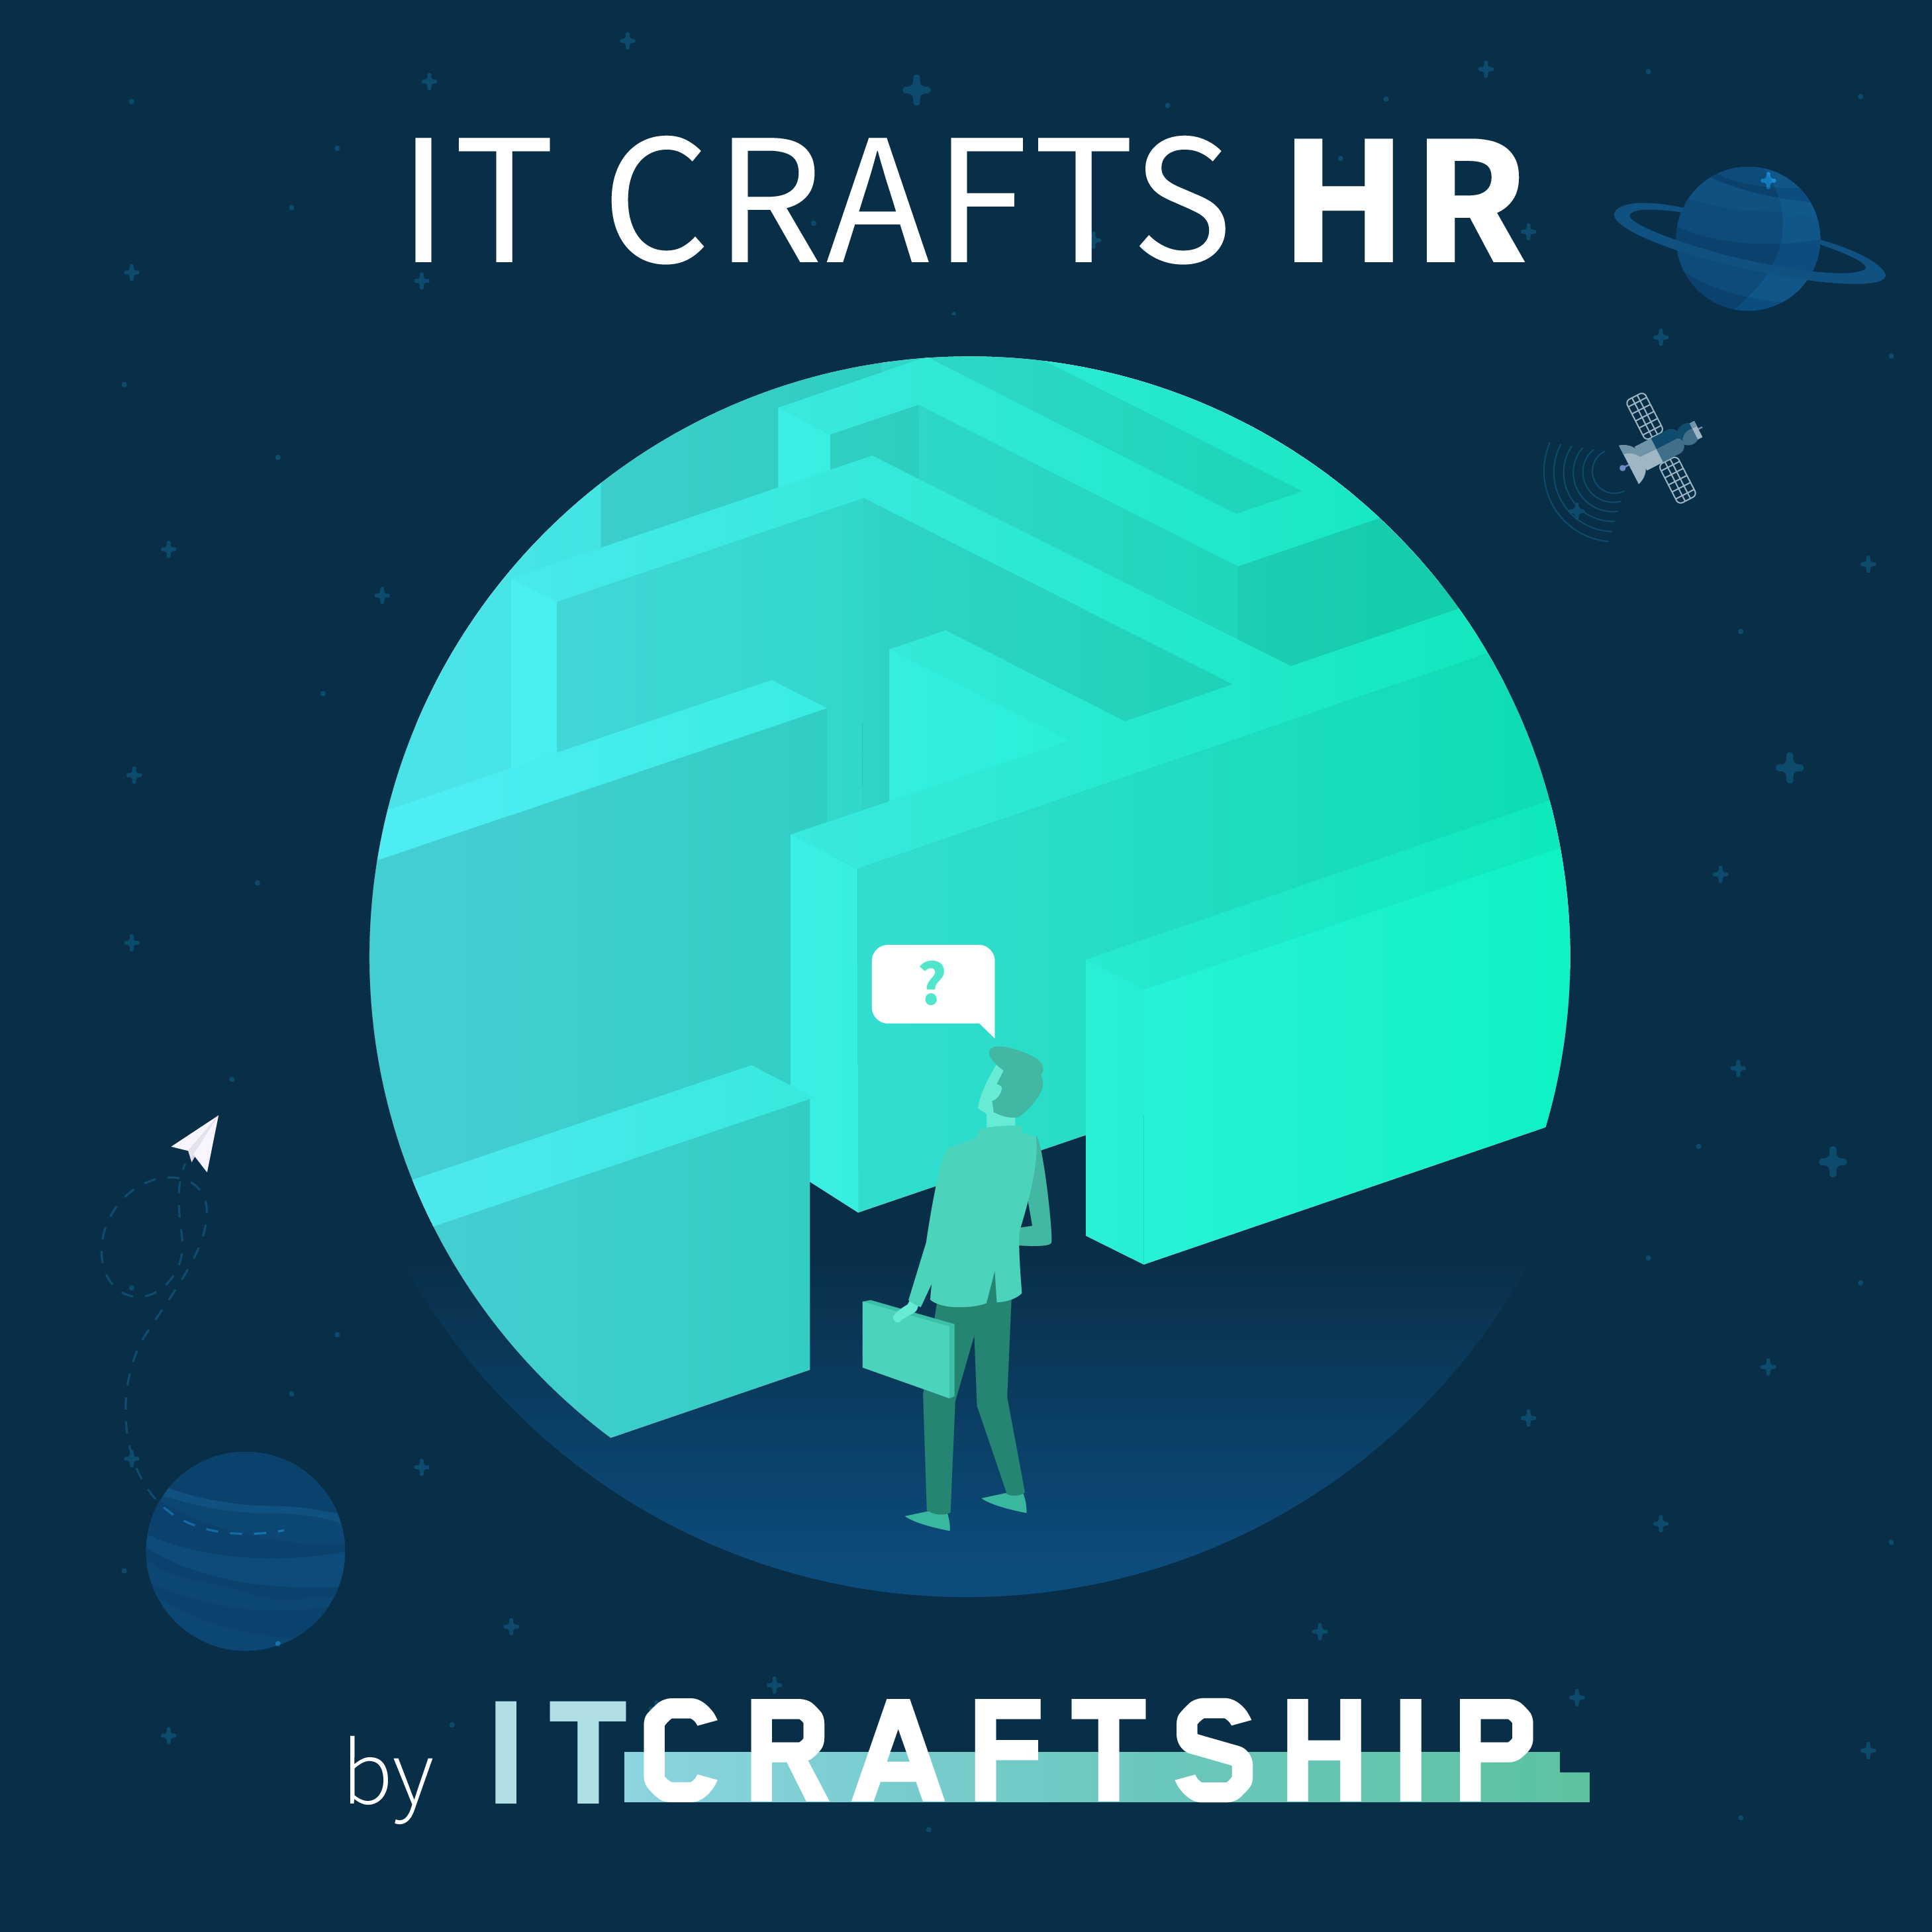 IT CRAFTS HR Anna Engman from Detectify